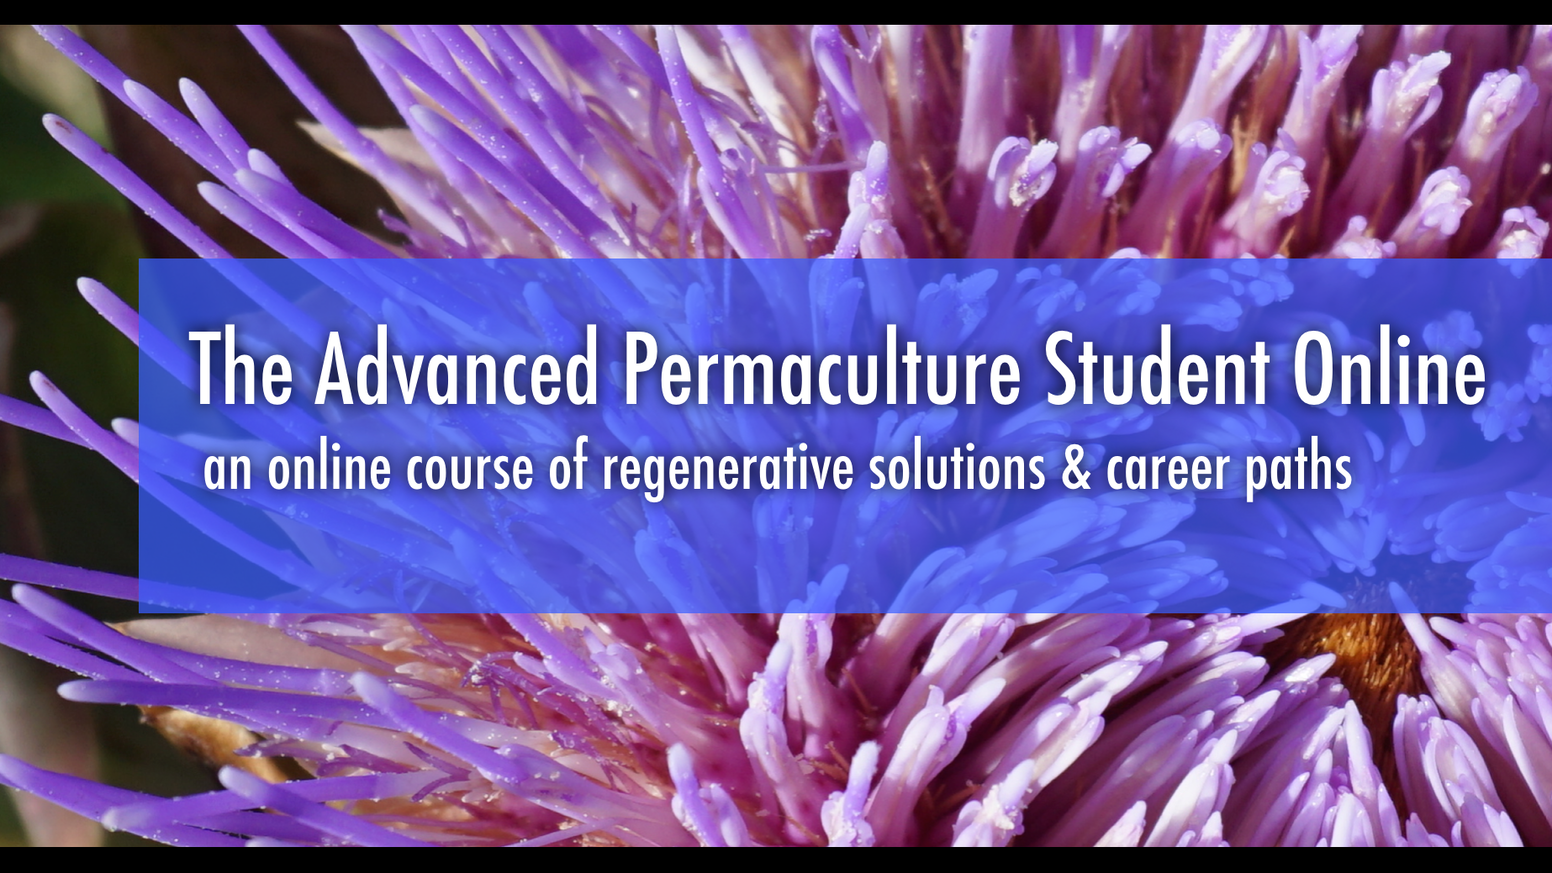 An Advanced, Online Permaculture Course that covers a Full Spectrum of Profitable & Proven Regenerative and Holistic Career Paths.